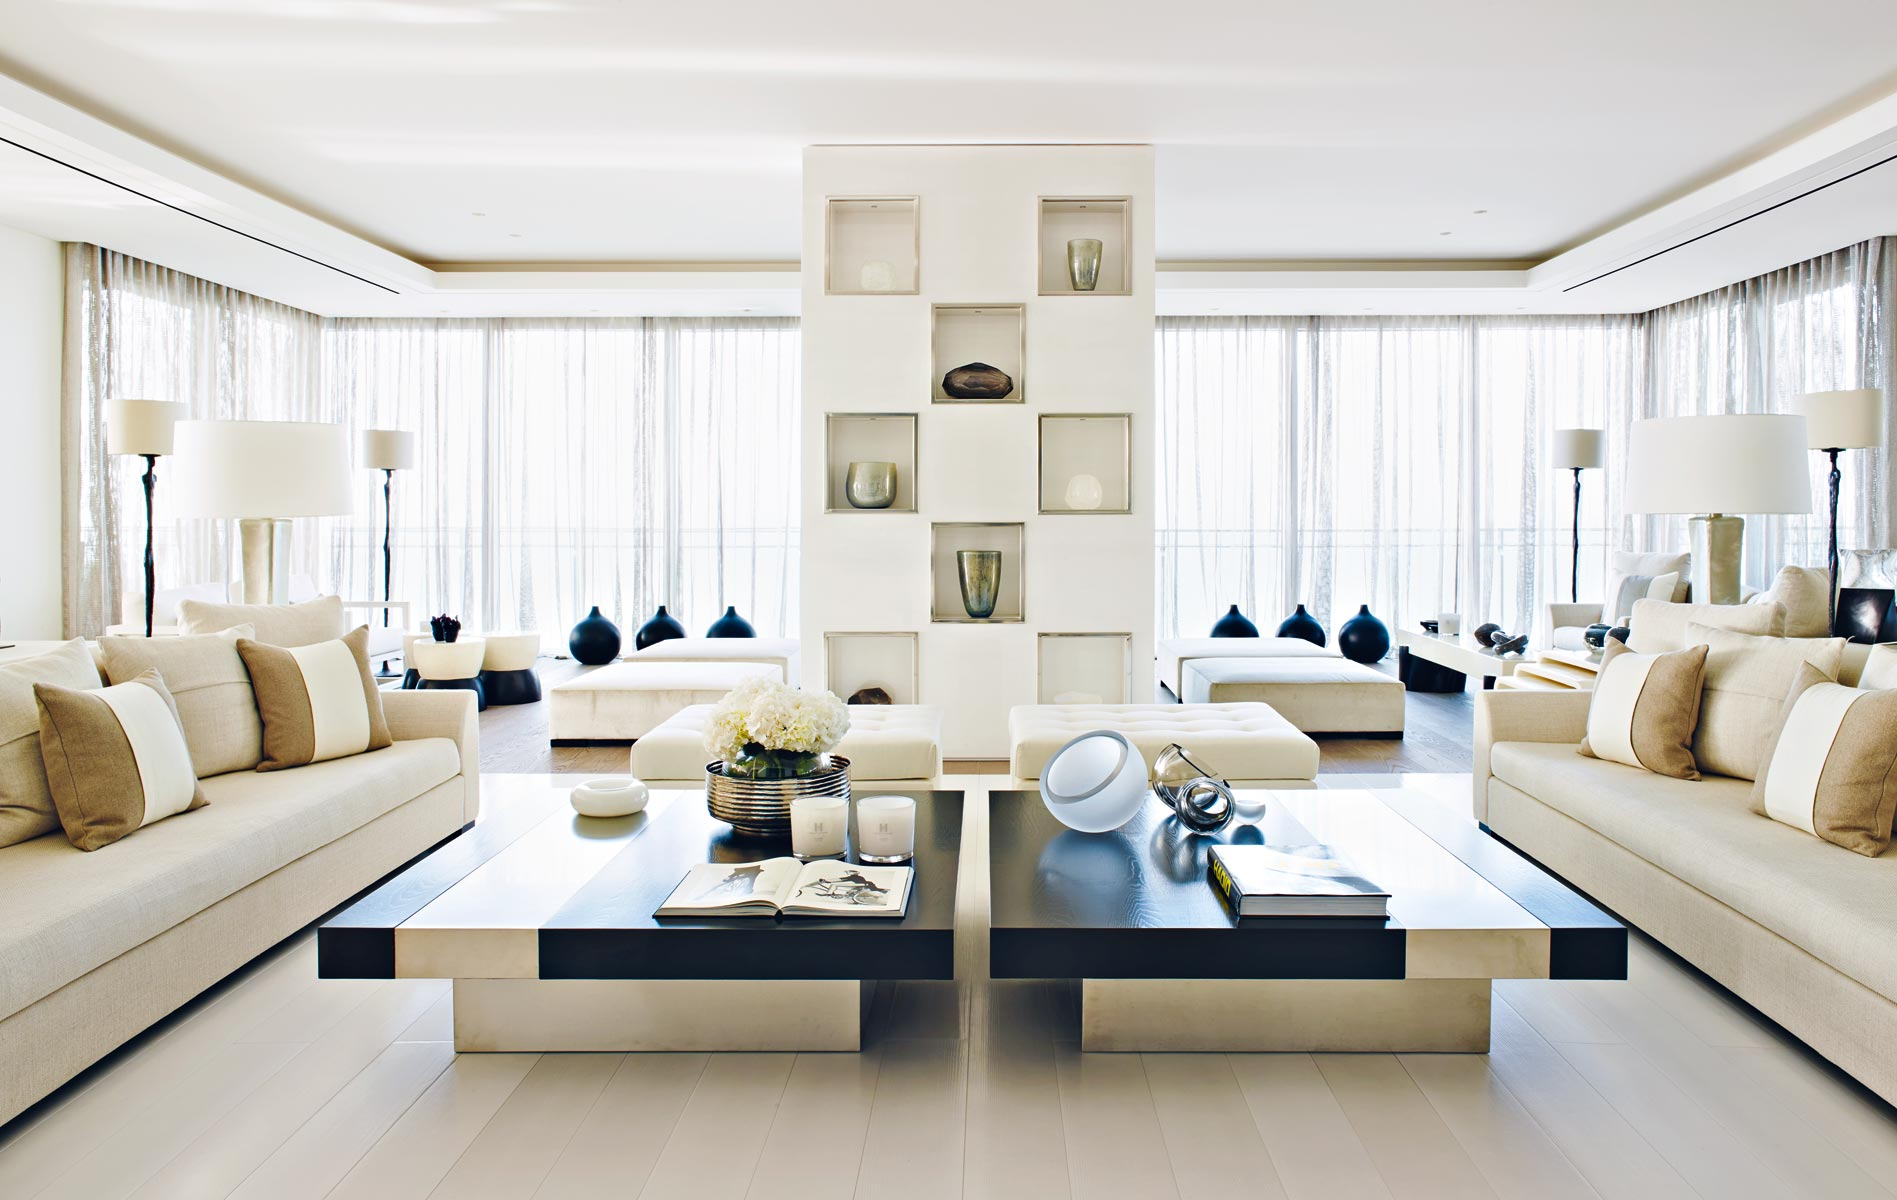 Stunning living room designed by Kelly Hoppen kelly hoppen Top 10 Kelly Hoppen Design Ideas stunning home beirut